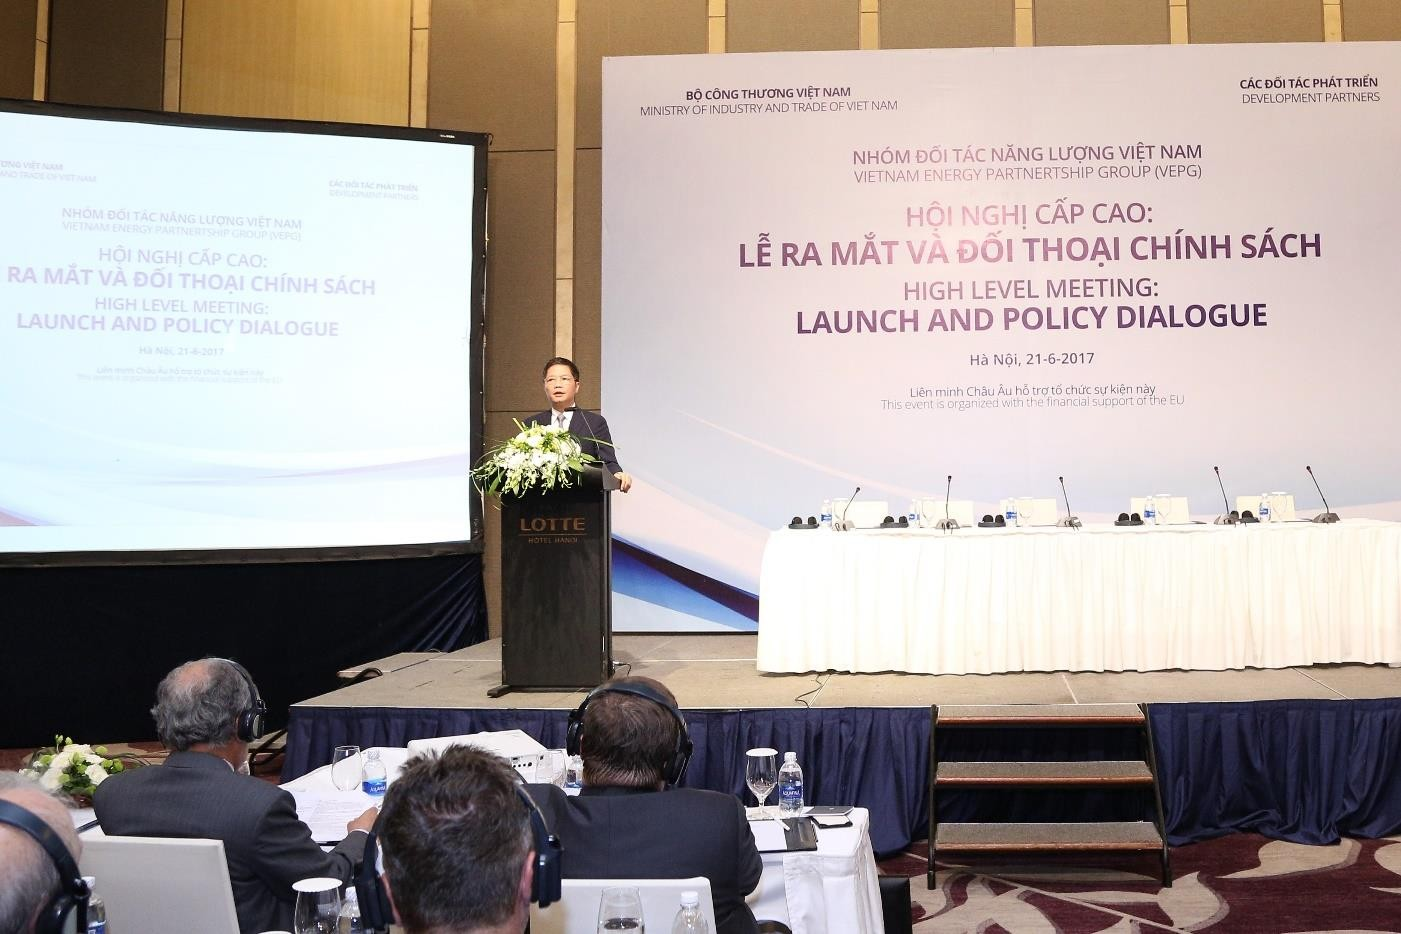 Opening speech by Minister Trần Tuấn Anh